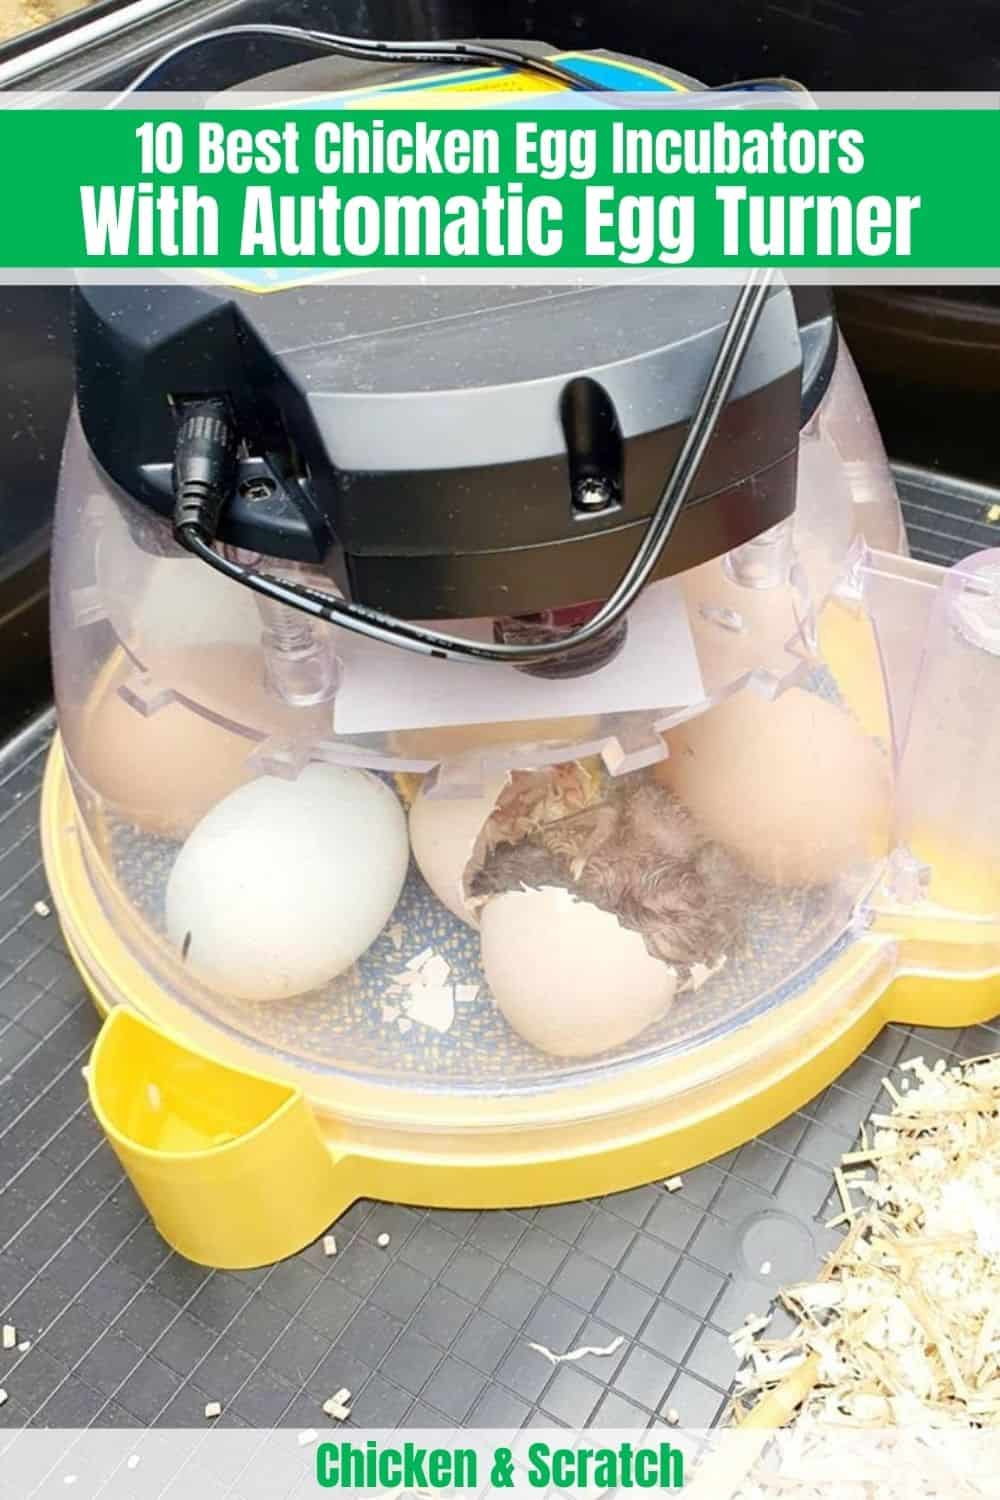 Best Chicken Egg Incubator